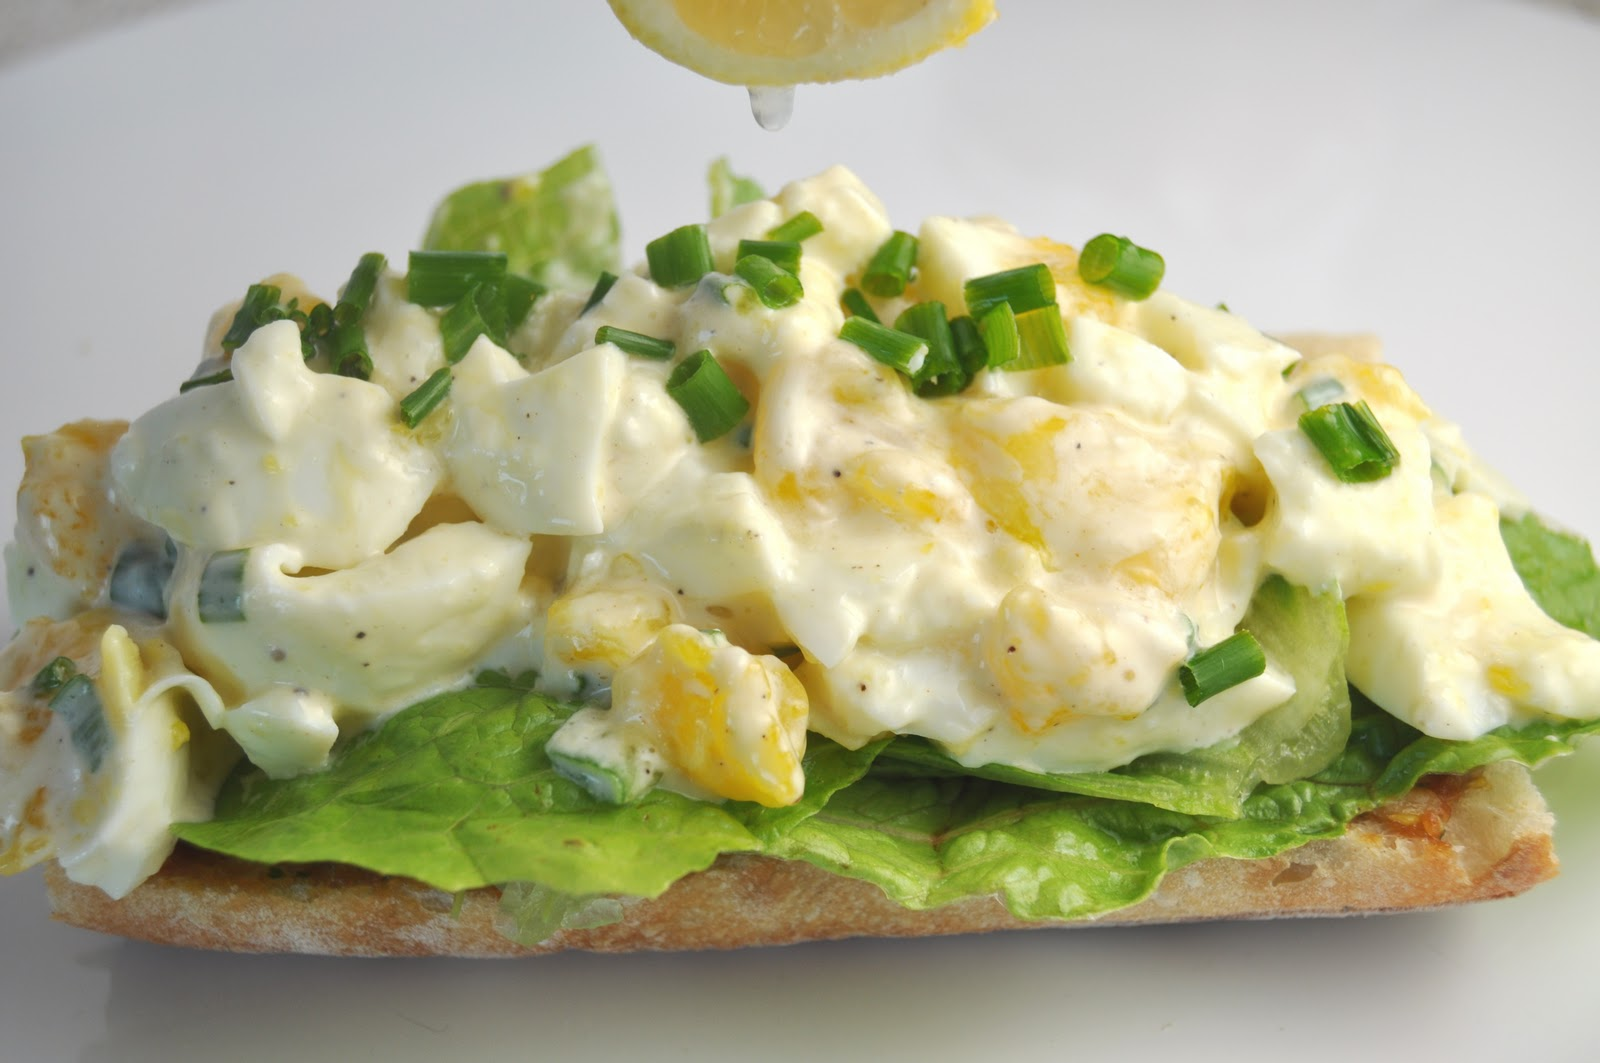 ... Taste: Superior Sandwich: The Best Egg Salad Sandwich I Ever Ate